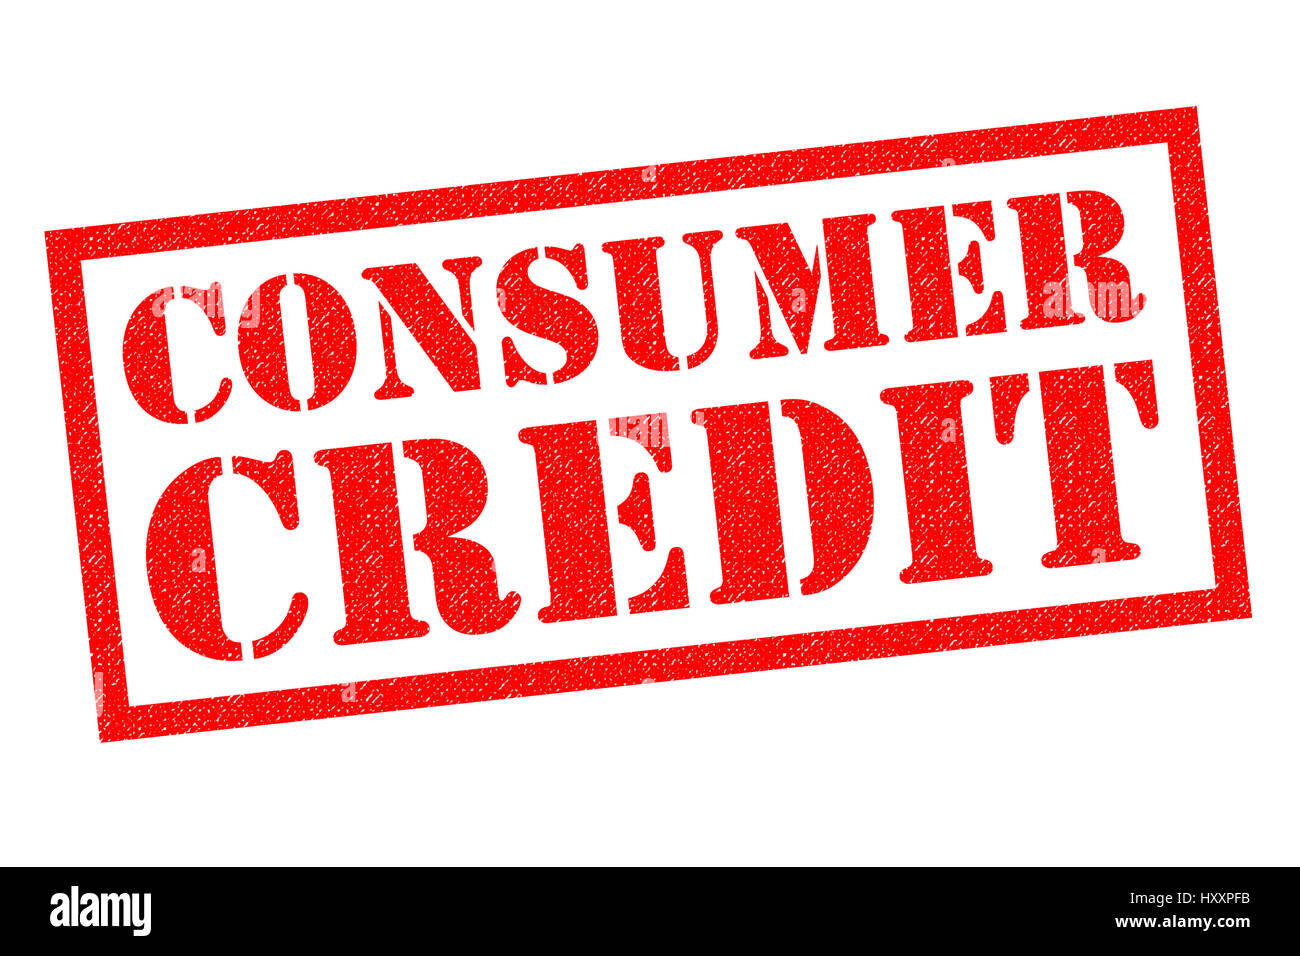 CONSUMER CREDIT red Rubber Stamp over a white background. - Stock Image